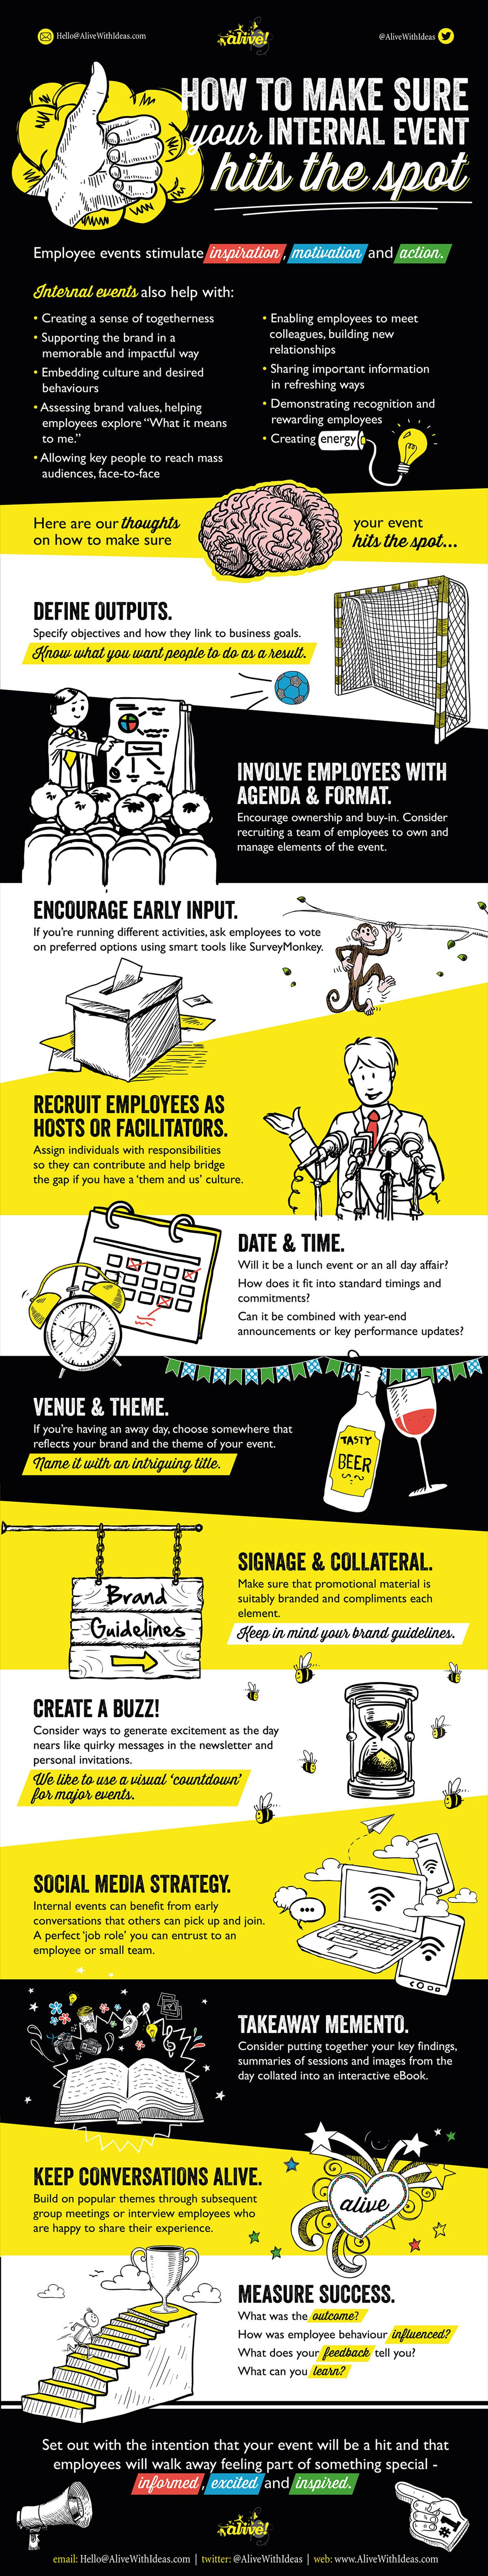 How to Make Sure Your Internal Event Hits the Spot